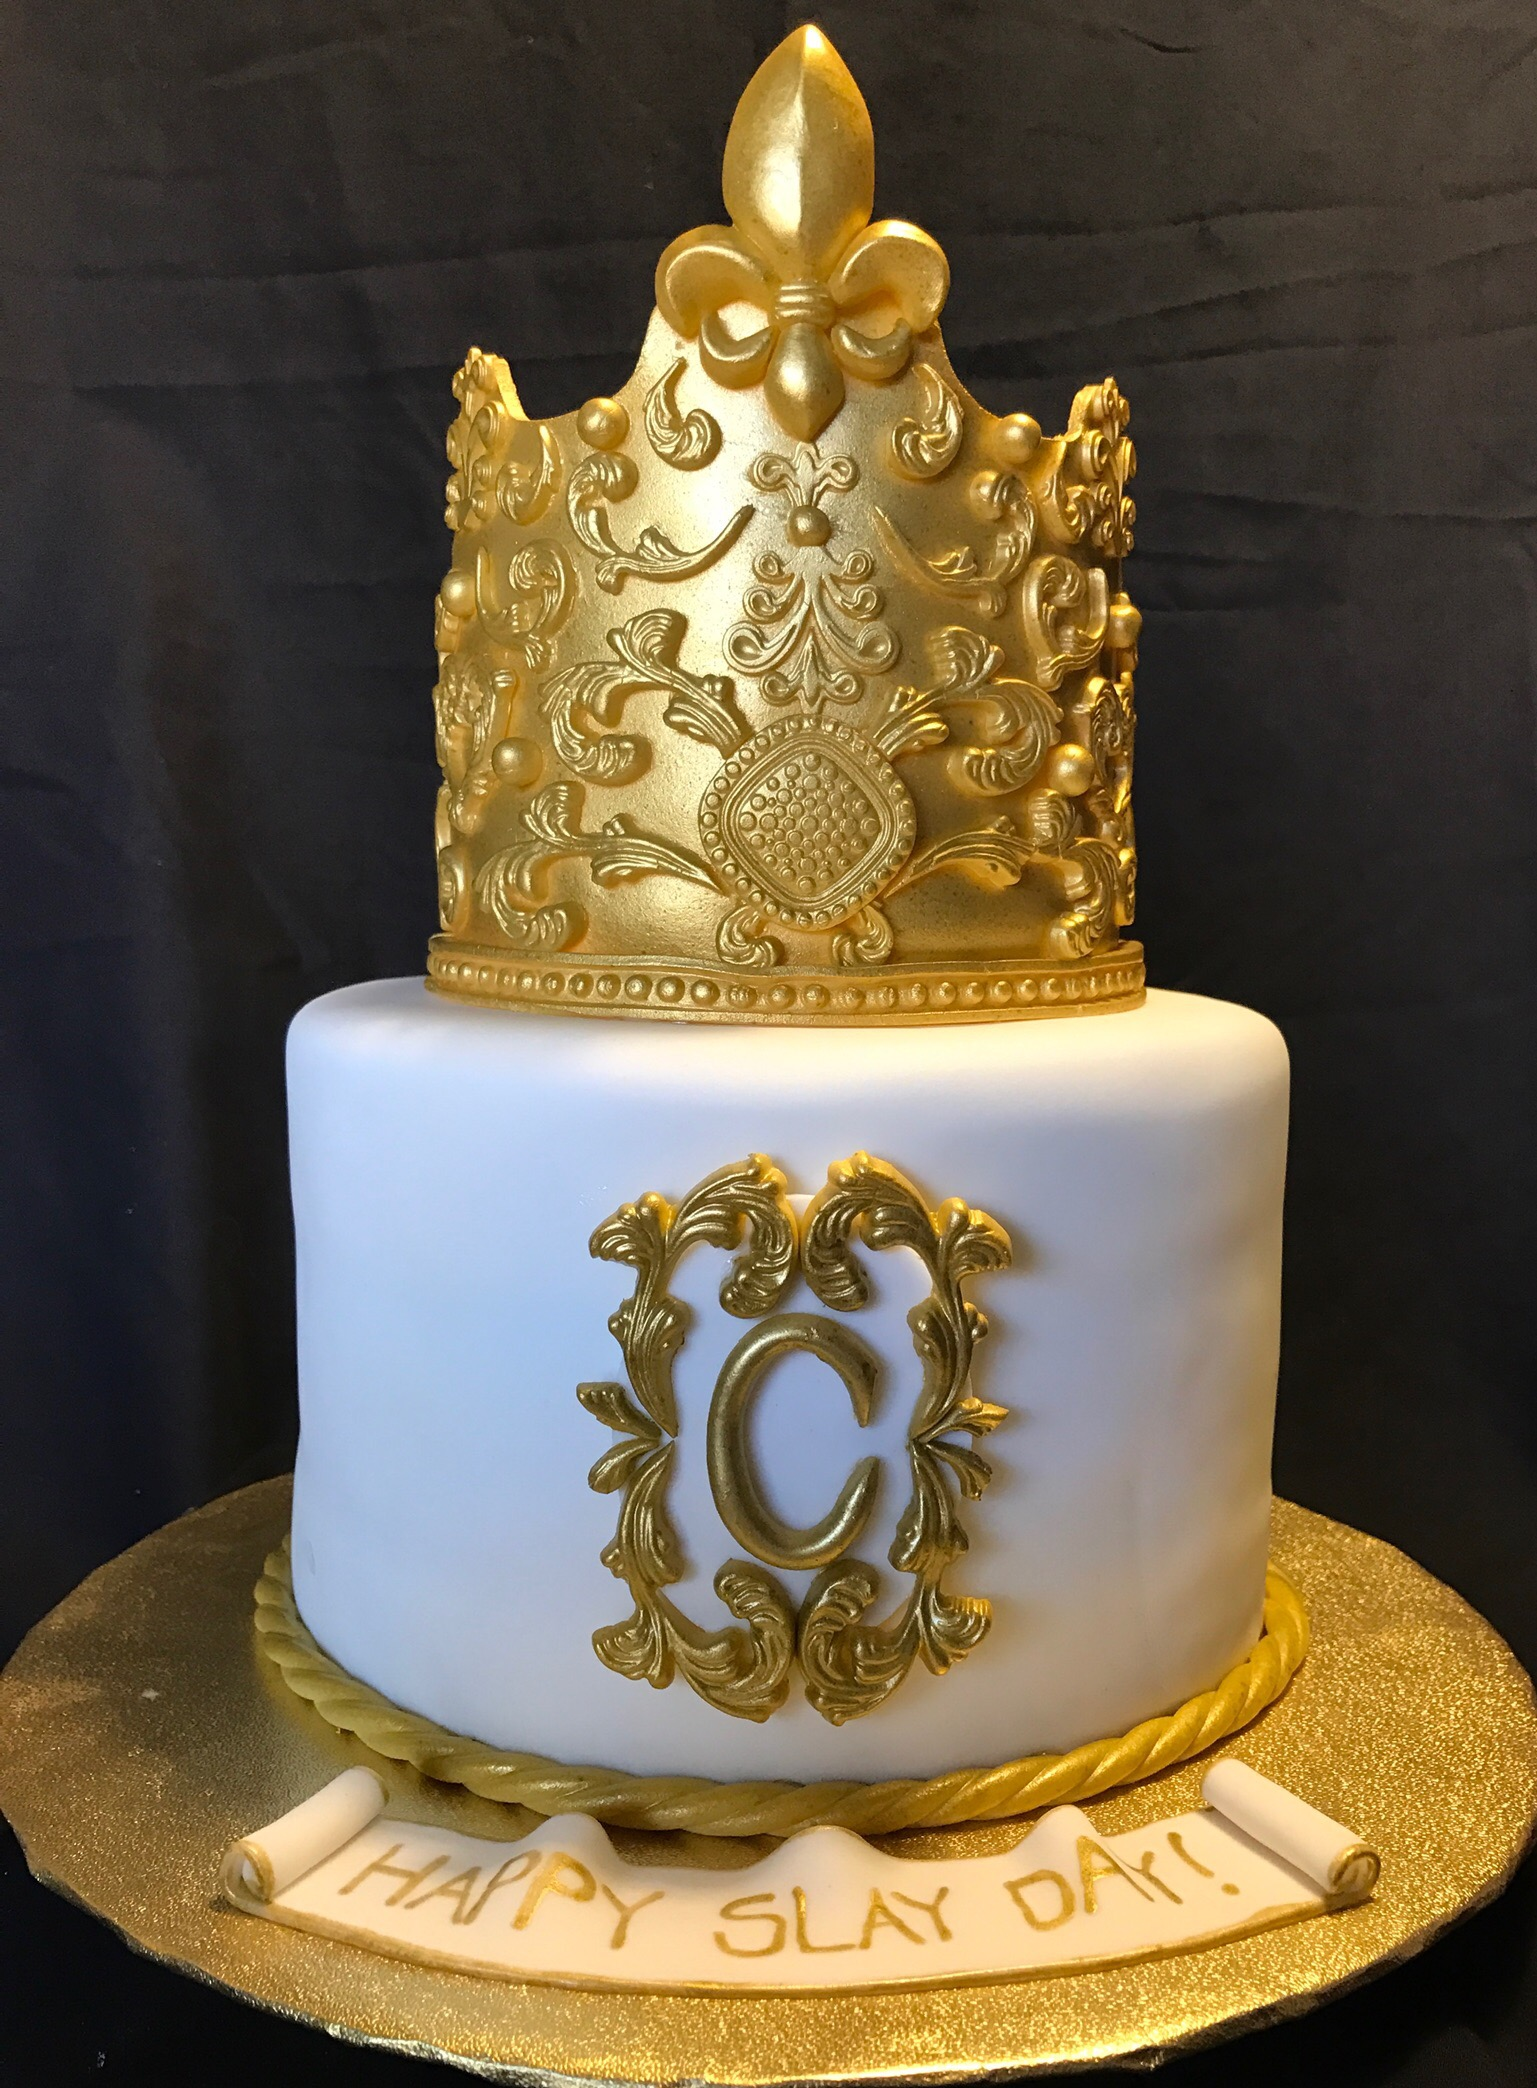 Crowned a Queen Cake